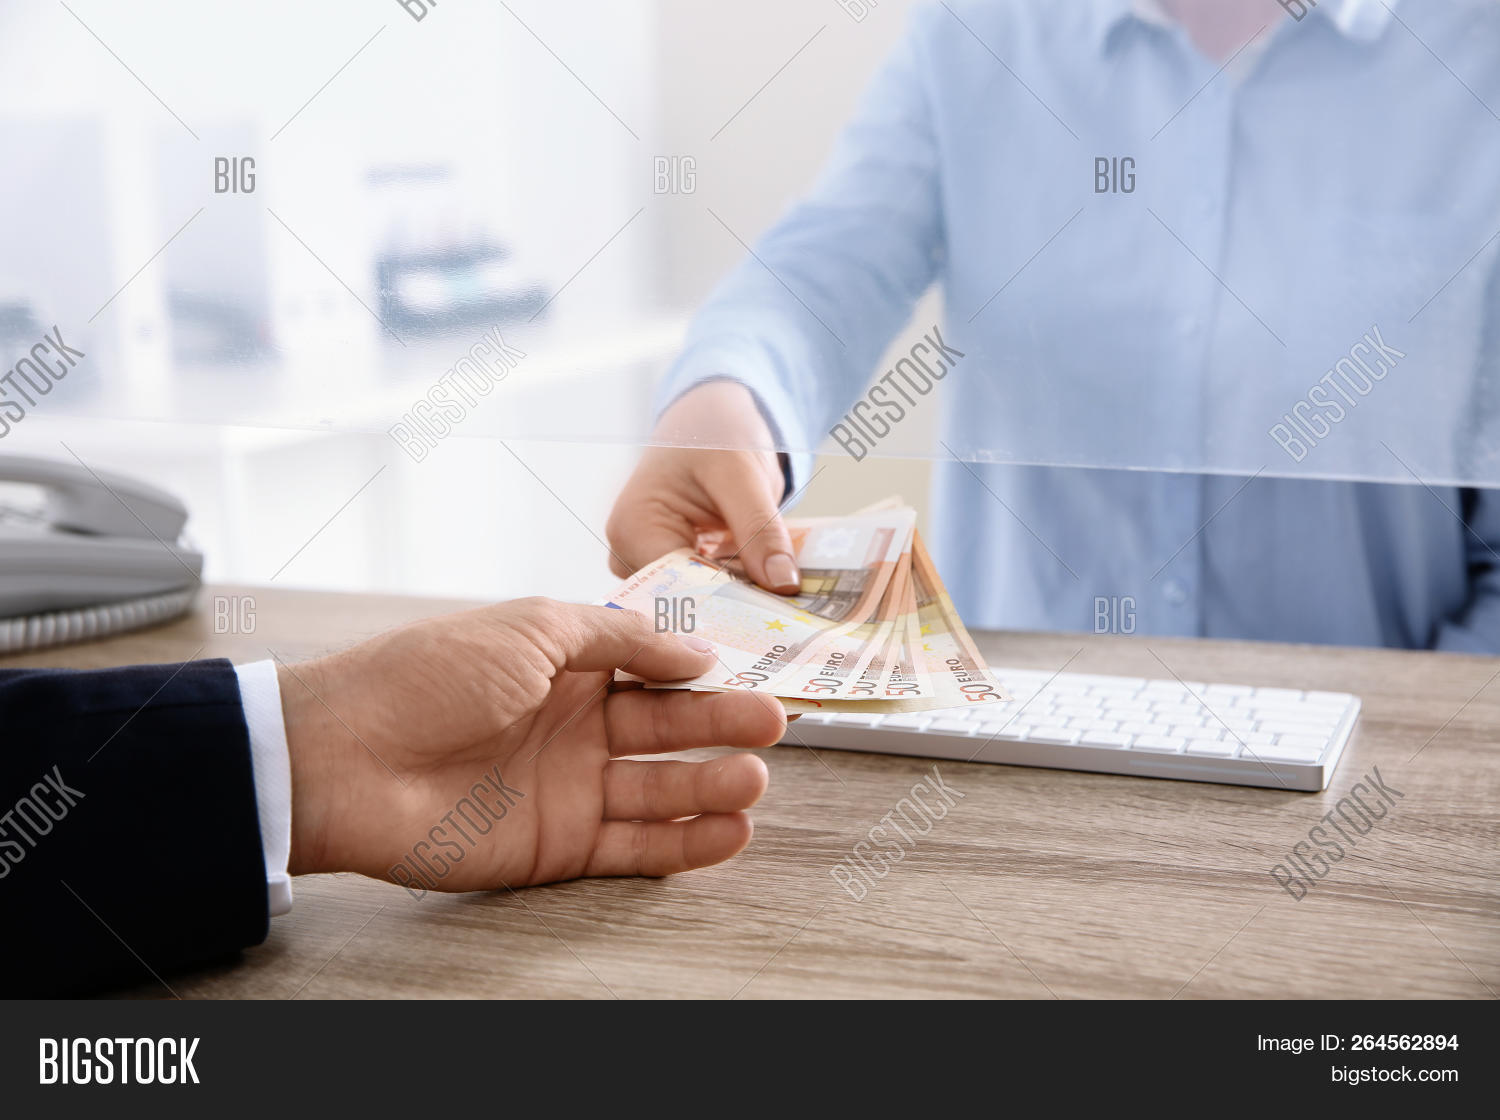 Man Receiving Money Image & Photo (Free Trial) | Bigstock